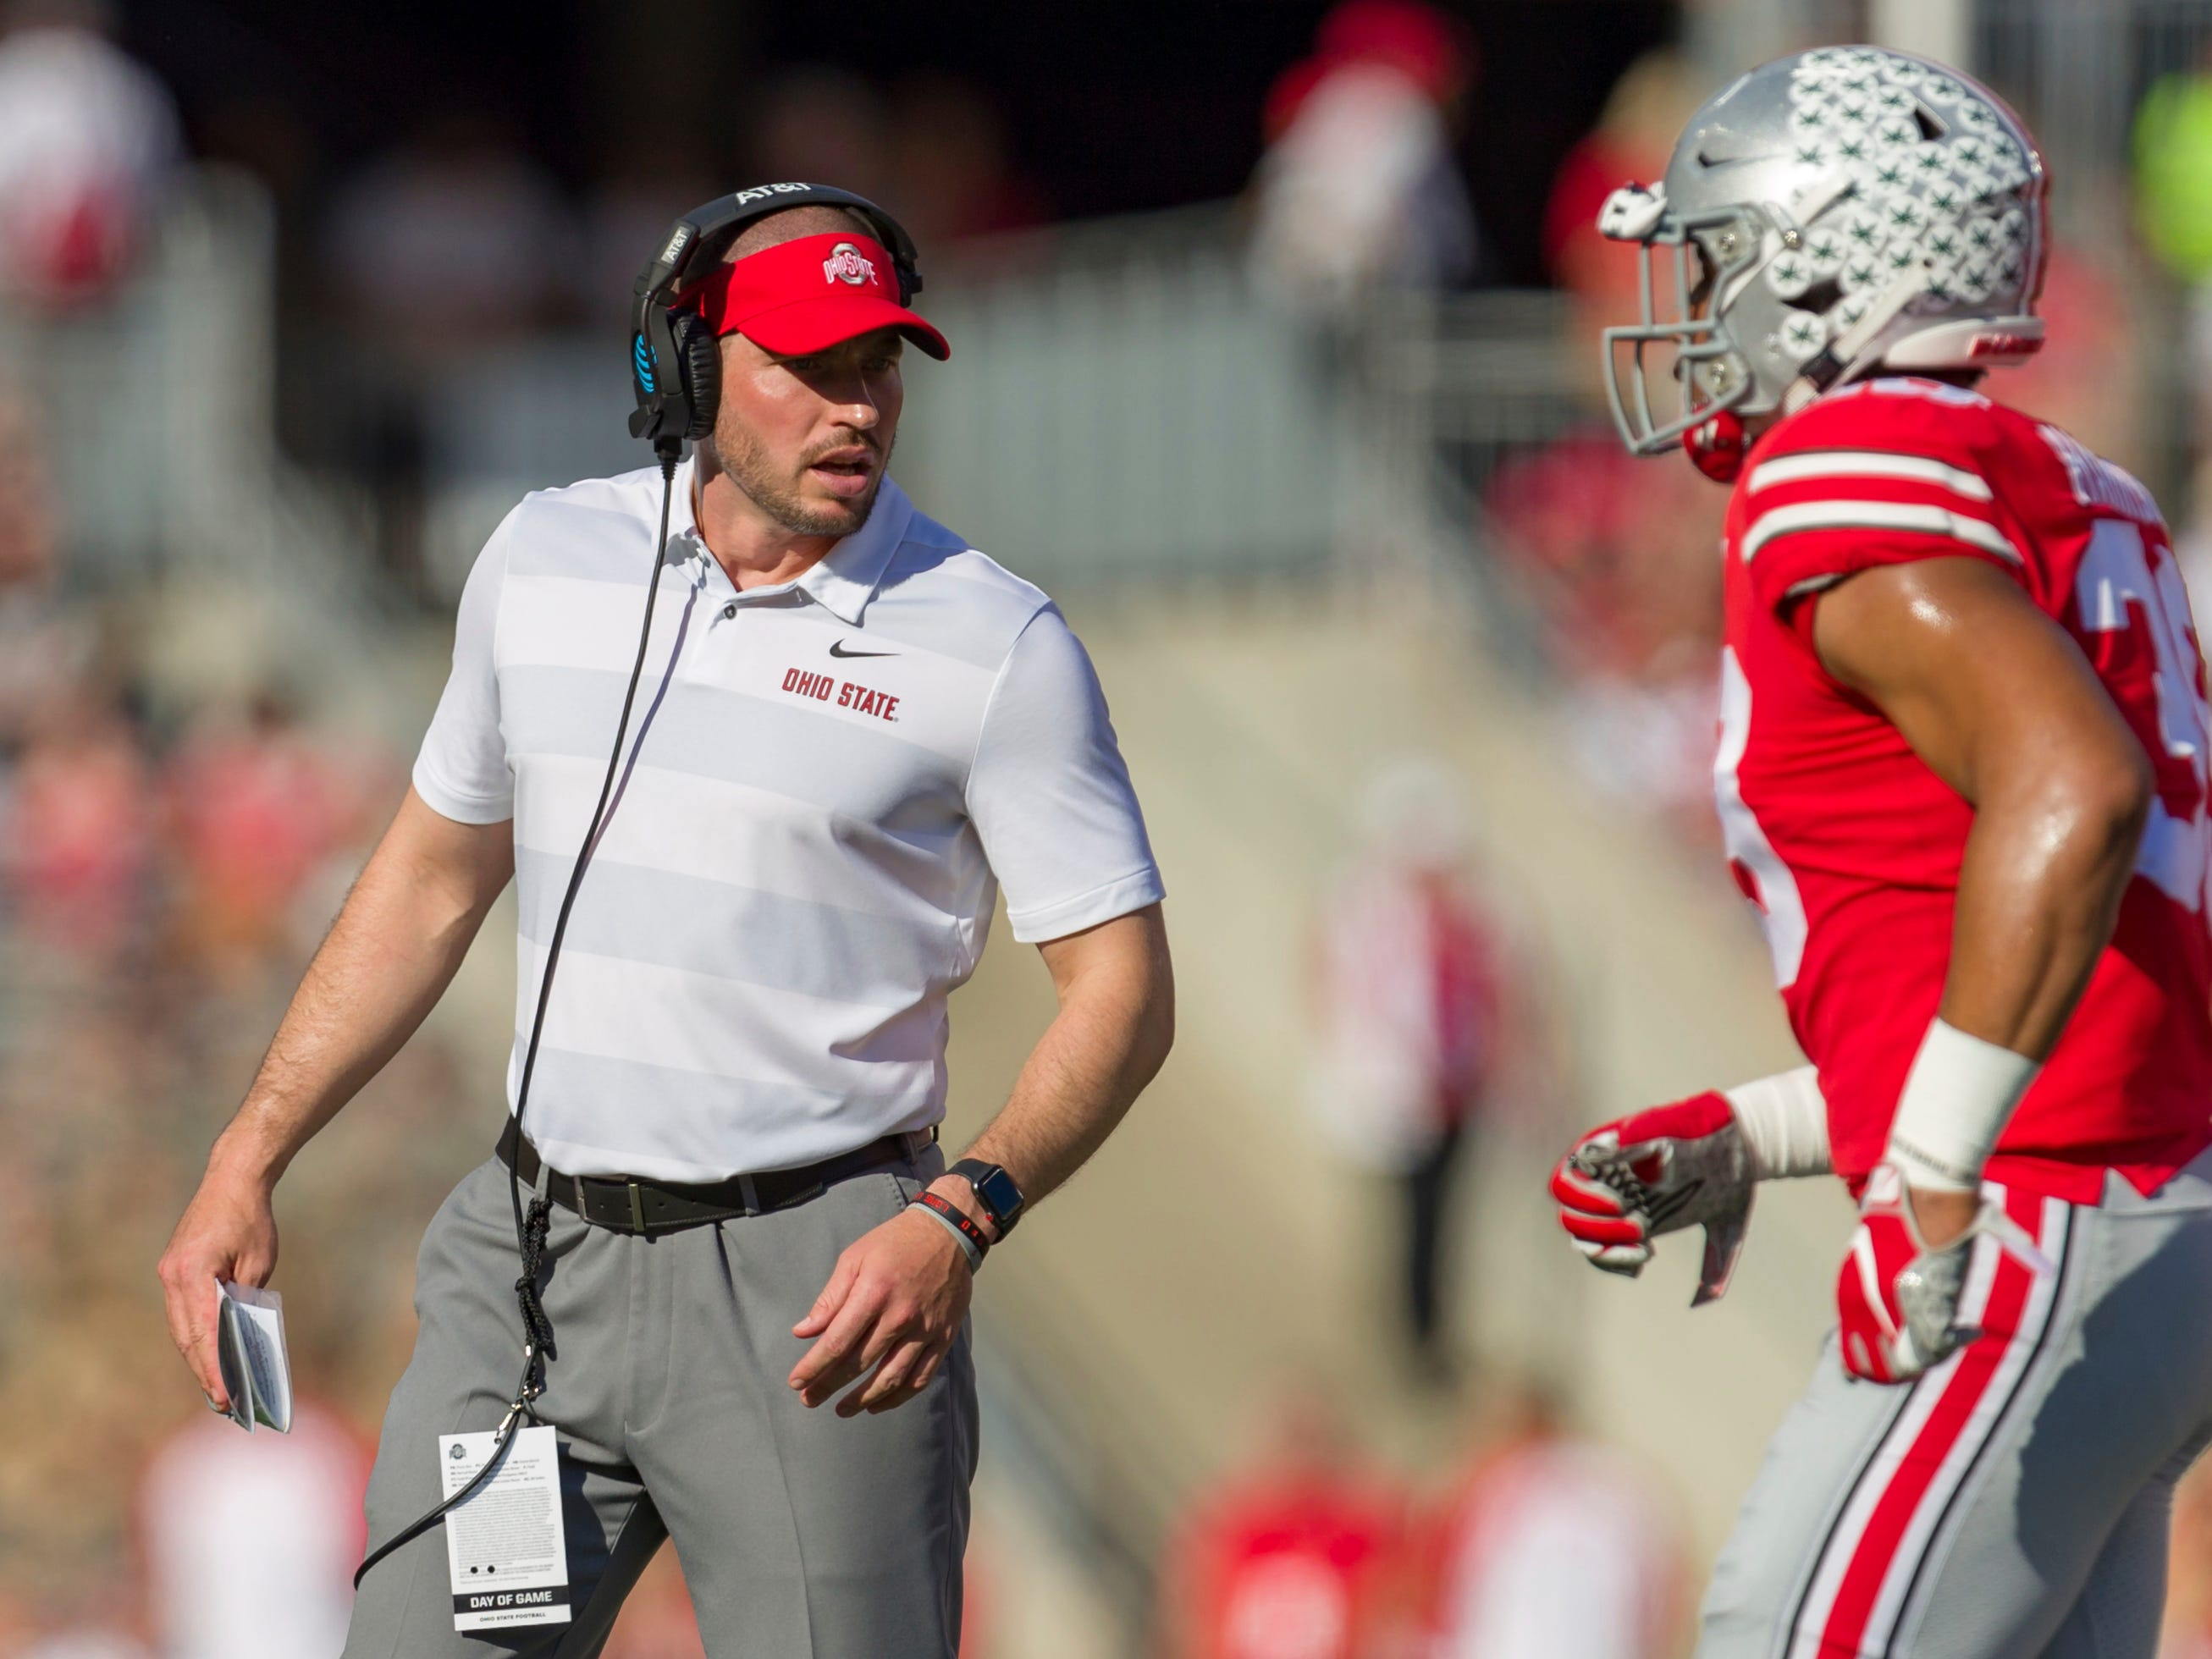 No. 15: Alex Grinch, Ohio State co-defensive coordinator: $1,158,938. Grinch left Washington State to join the Buckeyes after last season – and got a $200,000 raise. He also received a $358,938 lump sum that Ohio State terms a signing bonus, but was likely connected to the $250,000 buyout he owed Washington State.